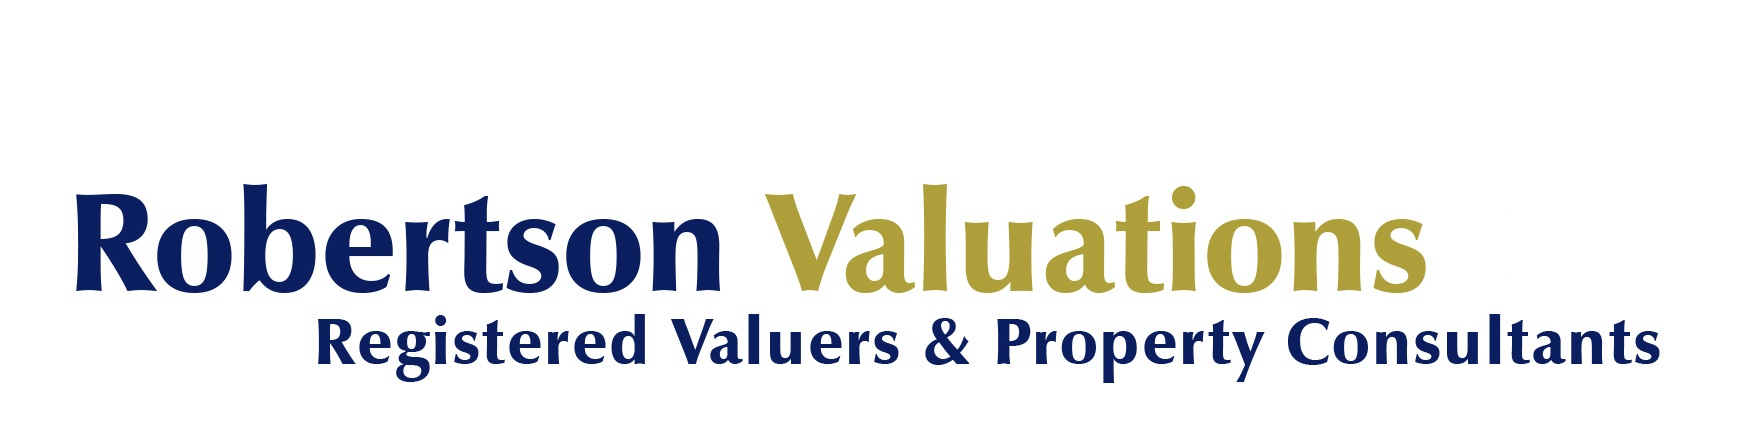 Robertson Valuations